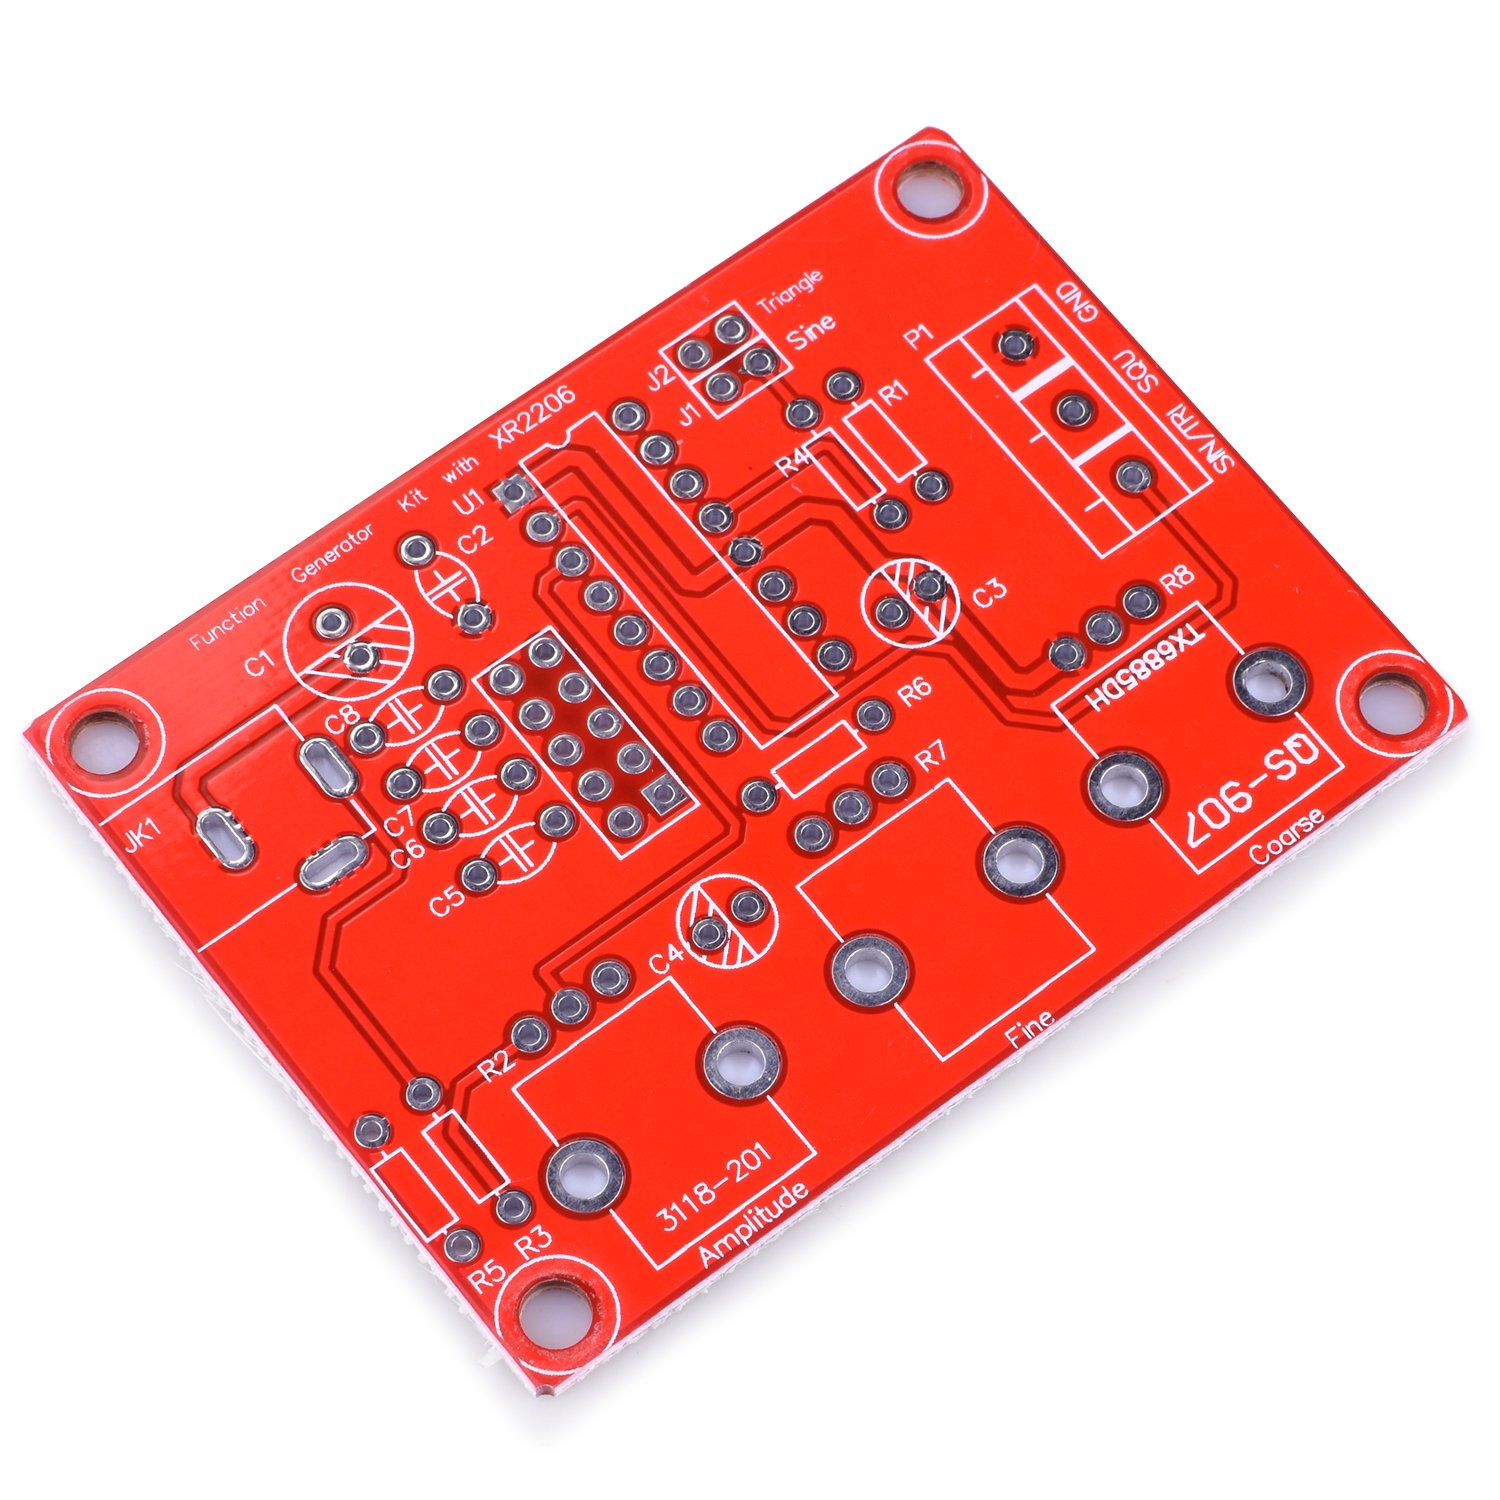 Xr2206 Schematic Electronic Projects T Electronics Precision Crystal Frequency Checher Circuit Diagram Tradeoficcom Function Generator Kuman Updated Diy Kit Signal With Screwdriver And Jumper Wires Cable Sine Triangle Square Output 1hz 1mhz